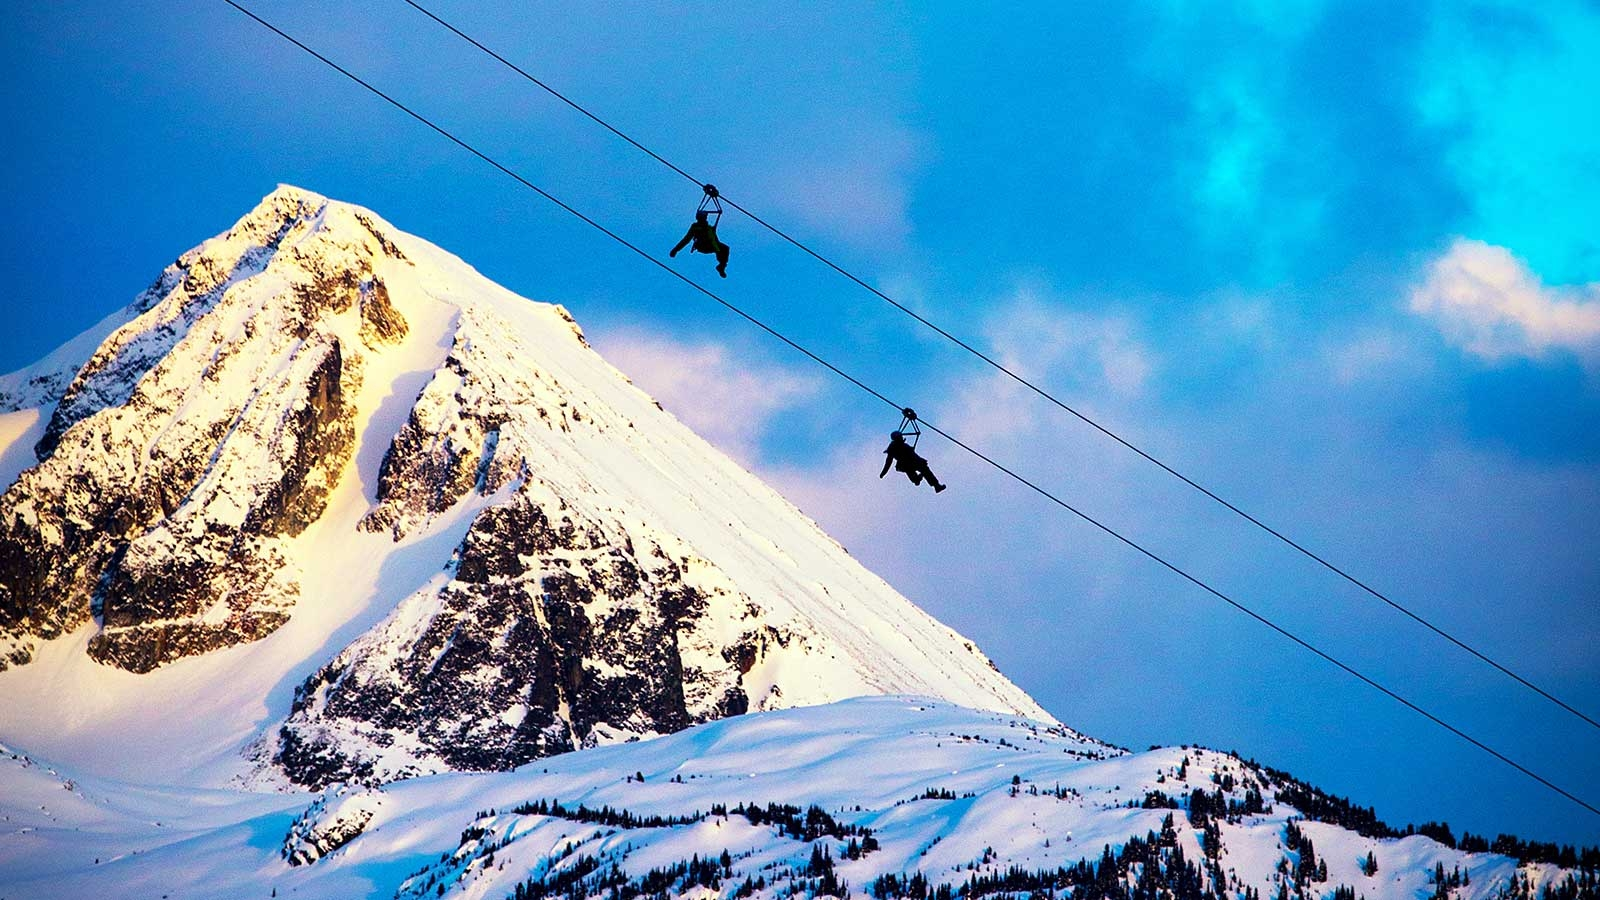 Two people ziplining with mountain top in background in Whistler